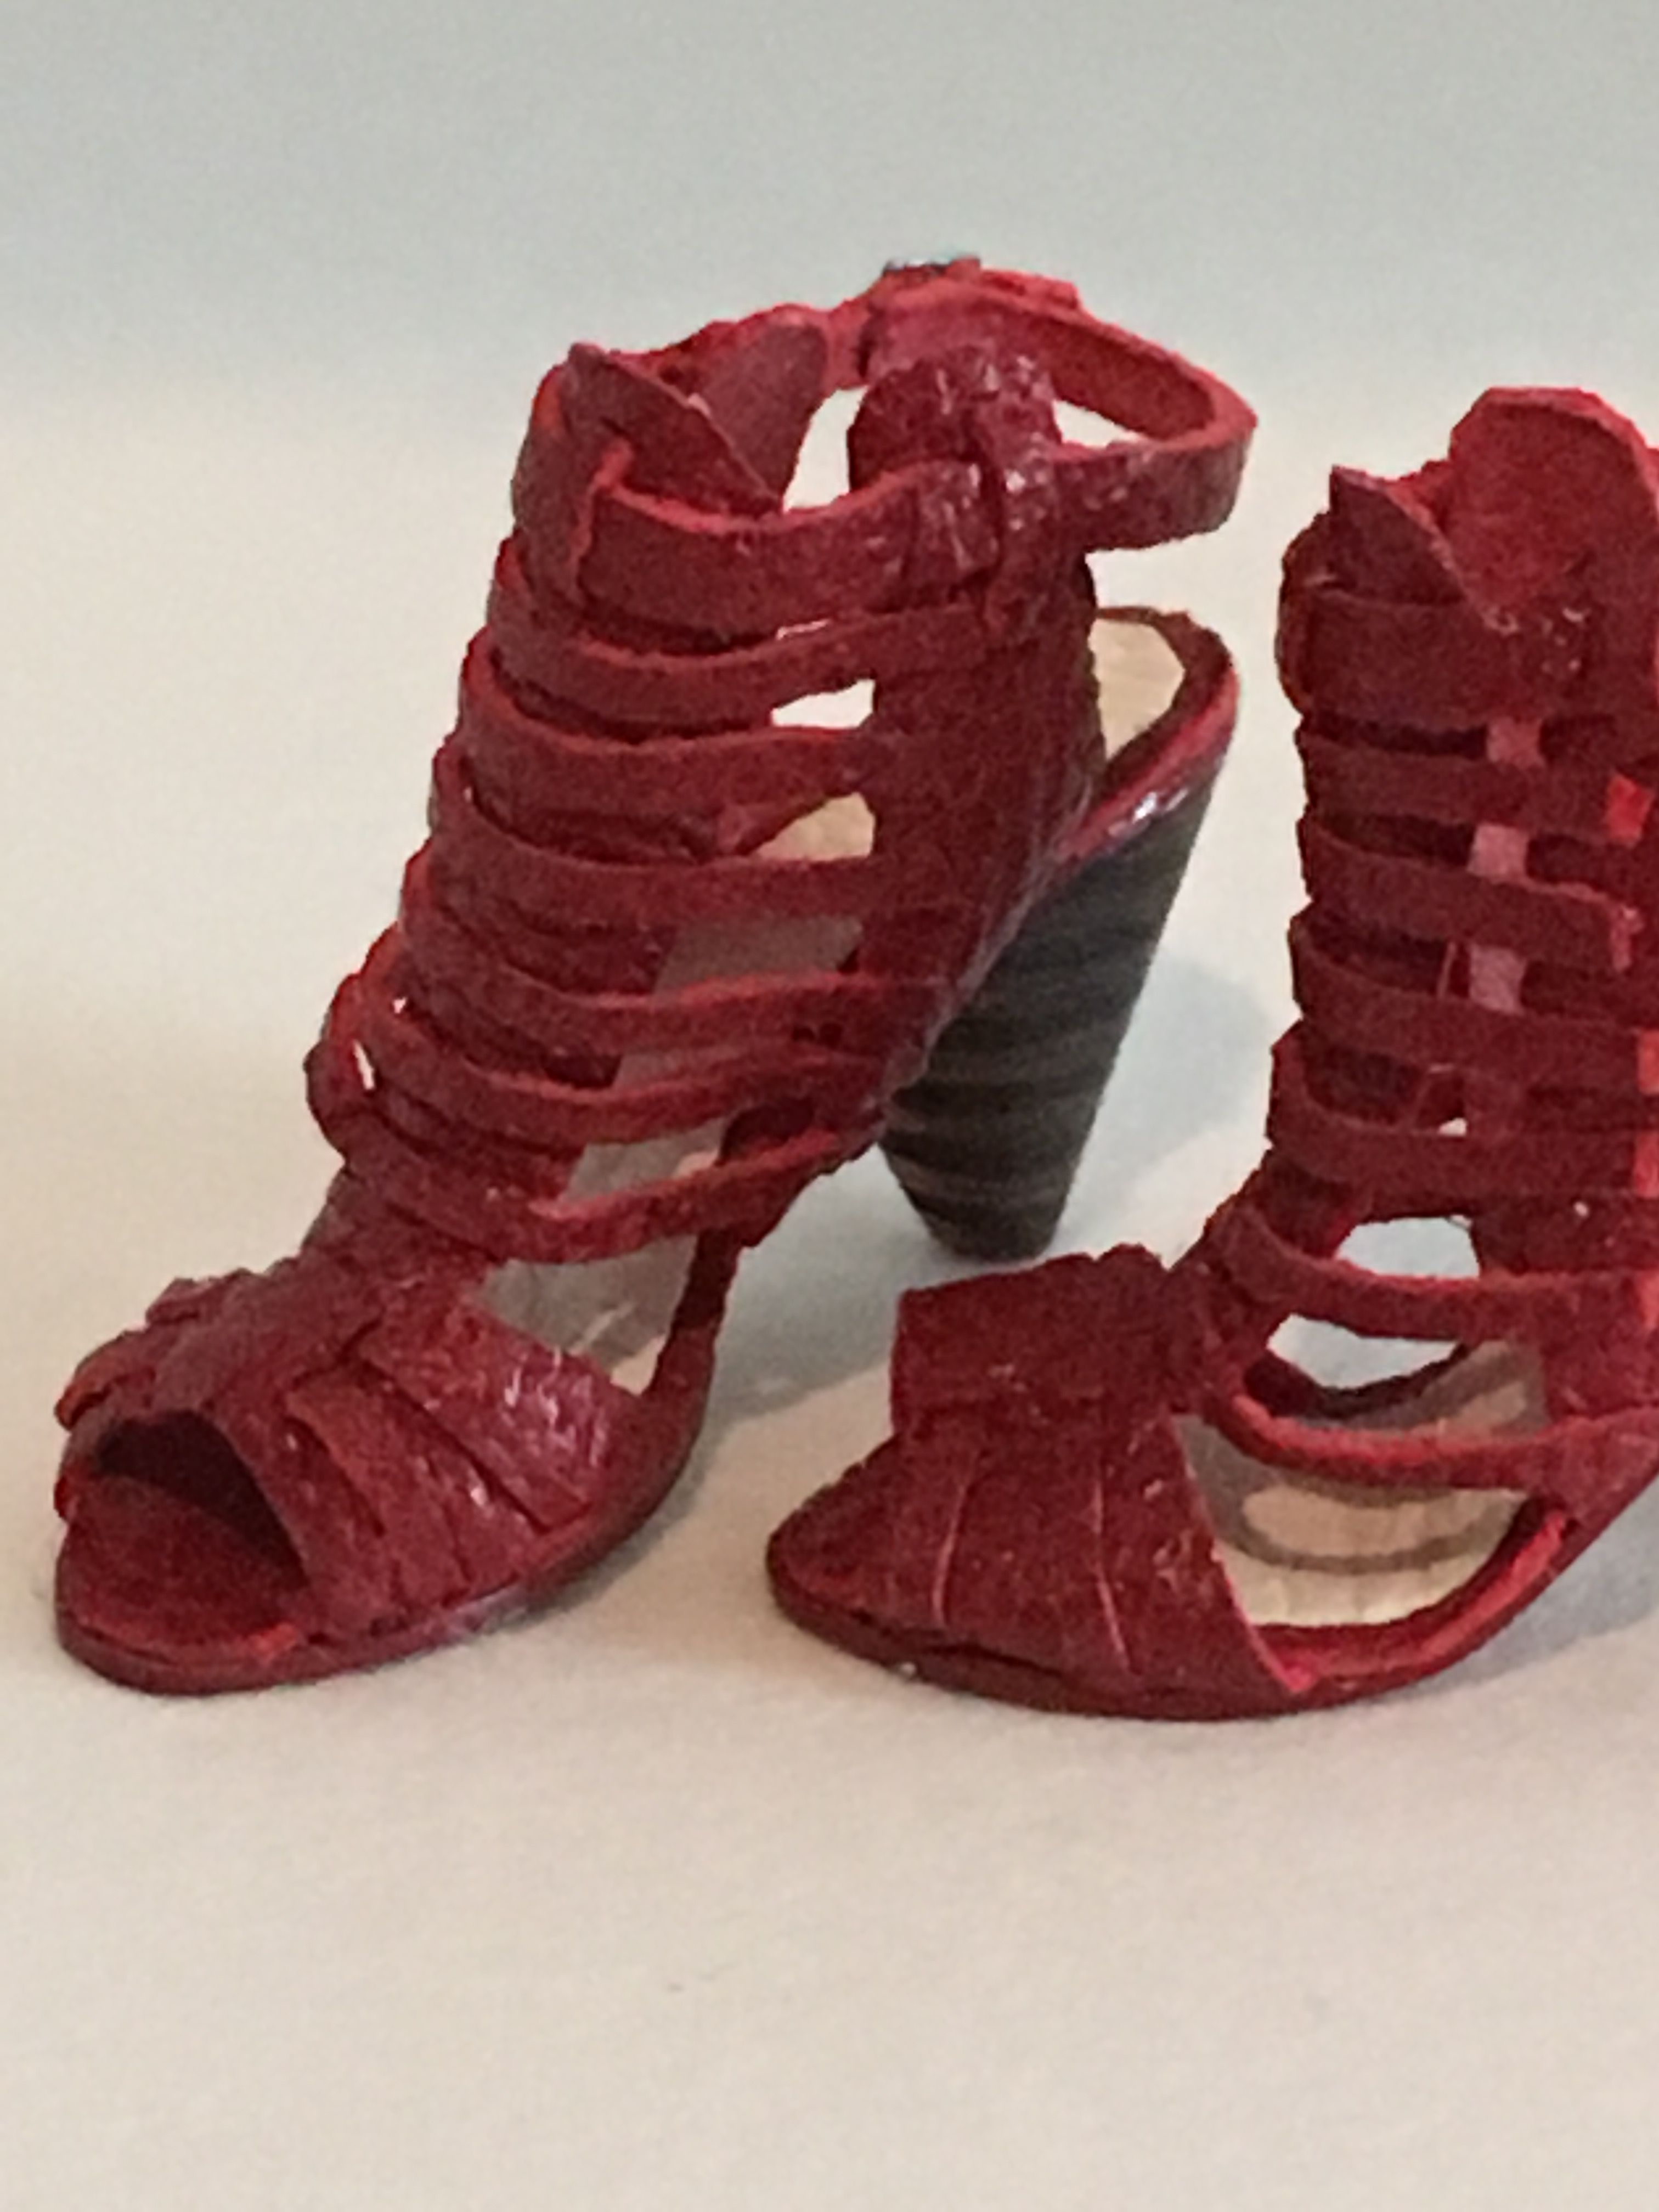 Patrizia santi igma artsan red leather sandals after vince camuto